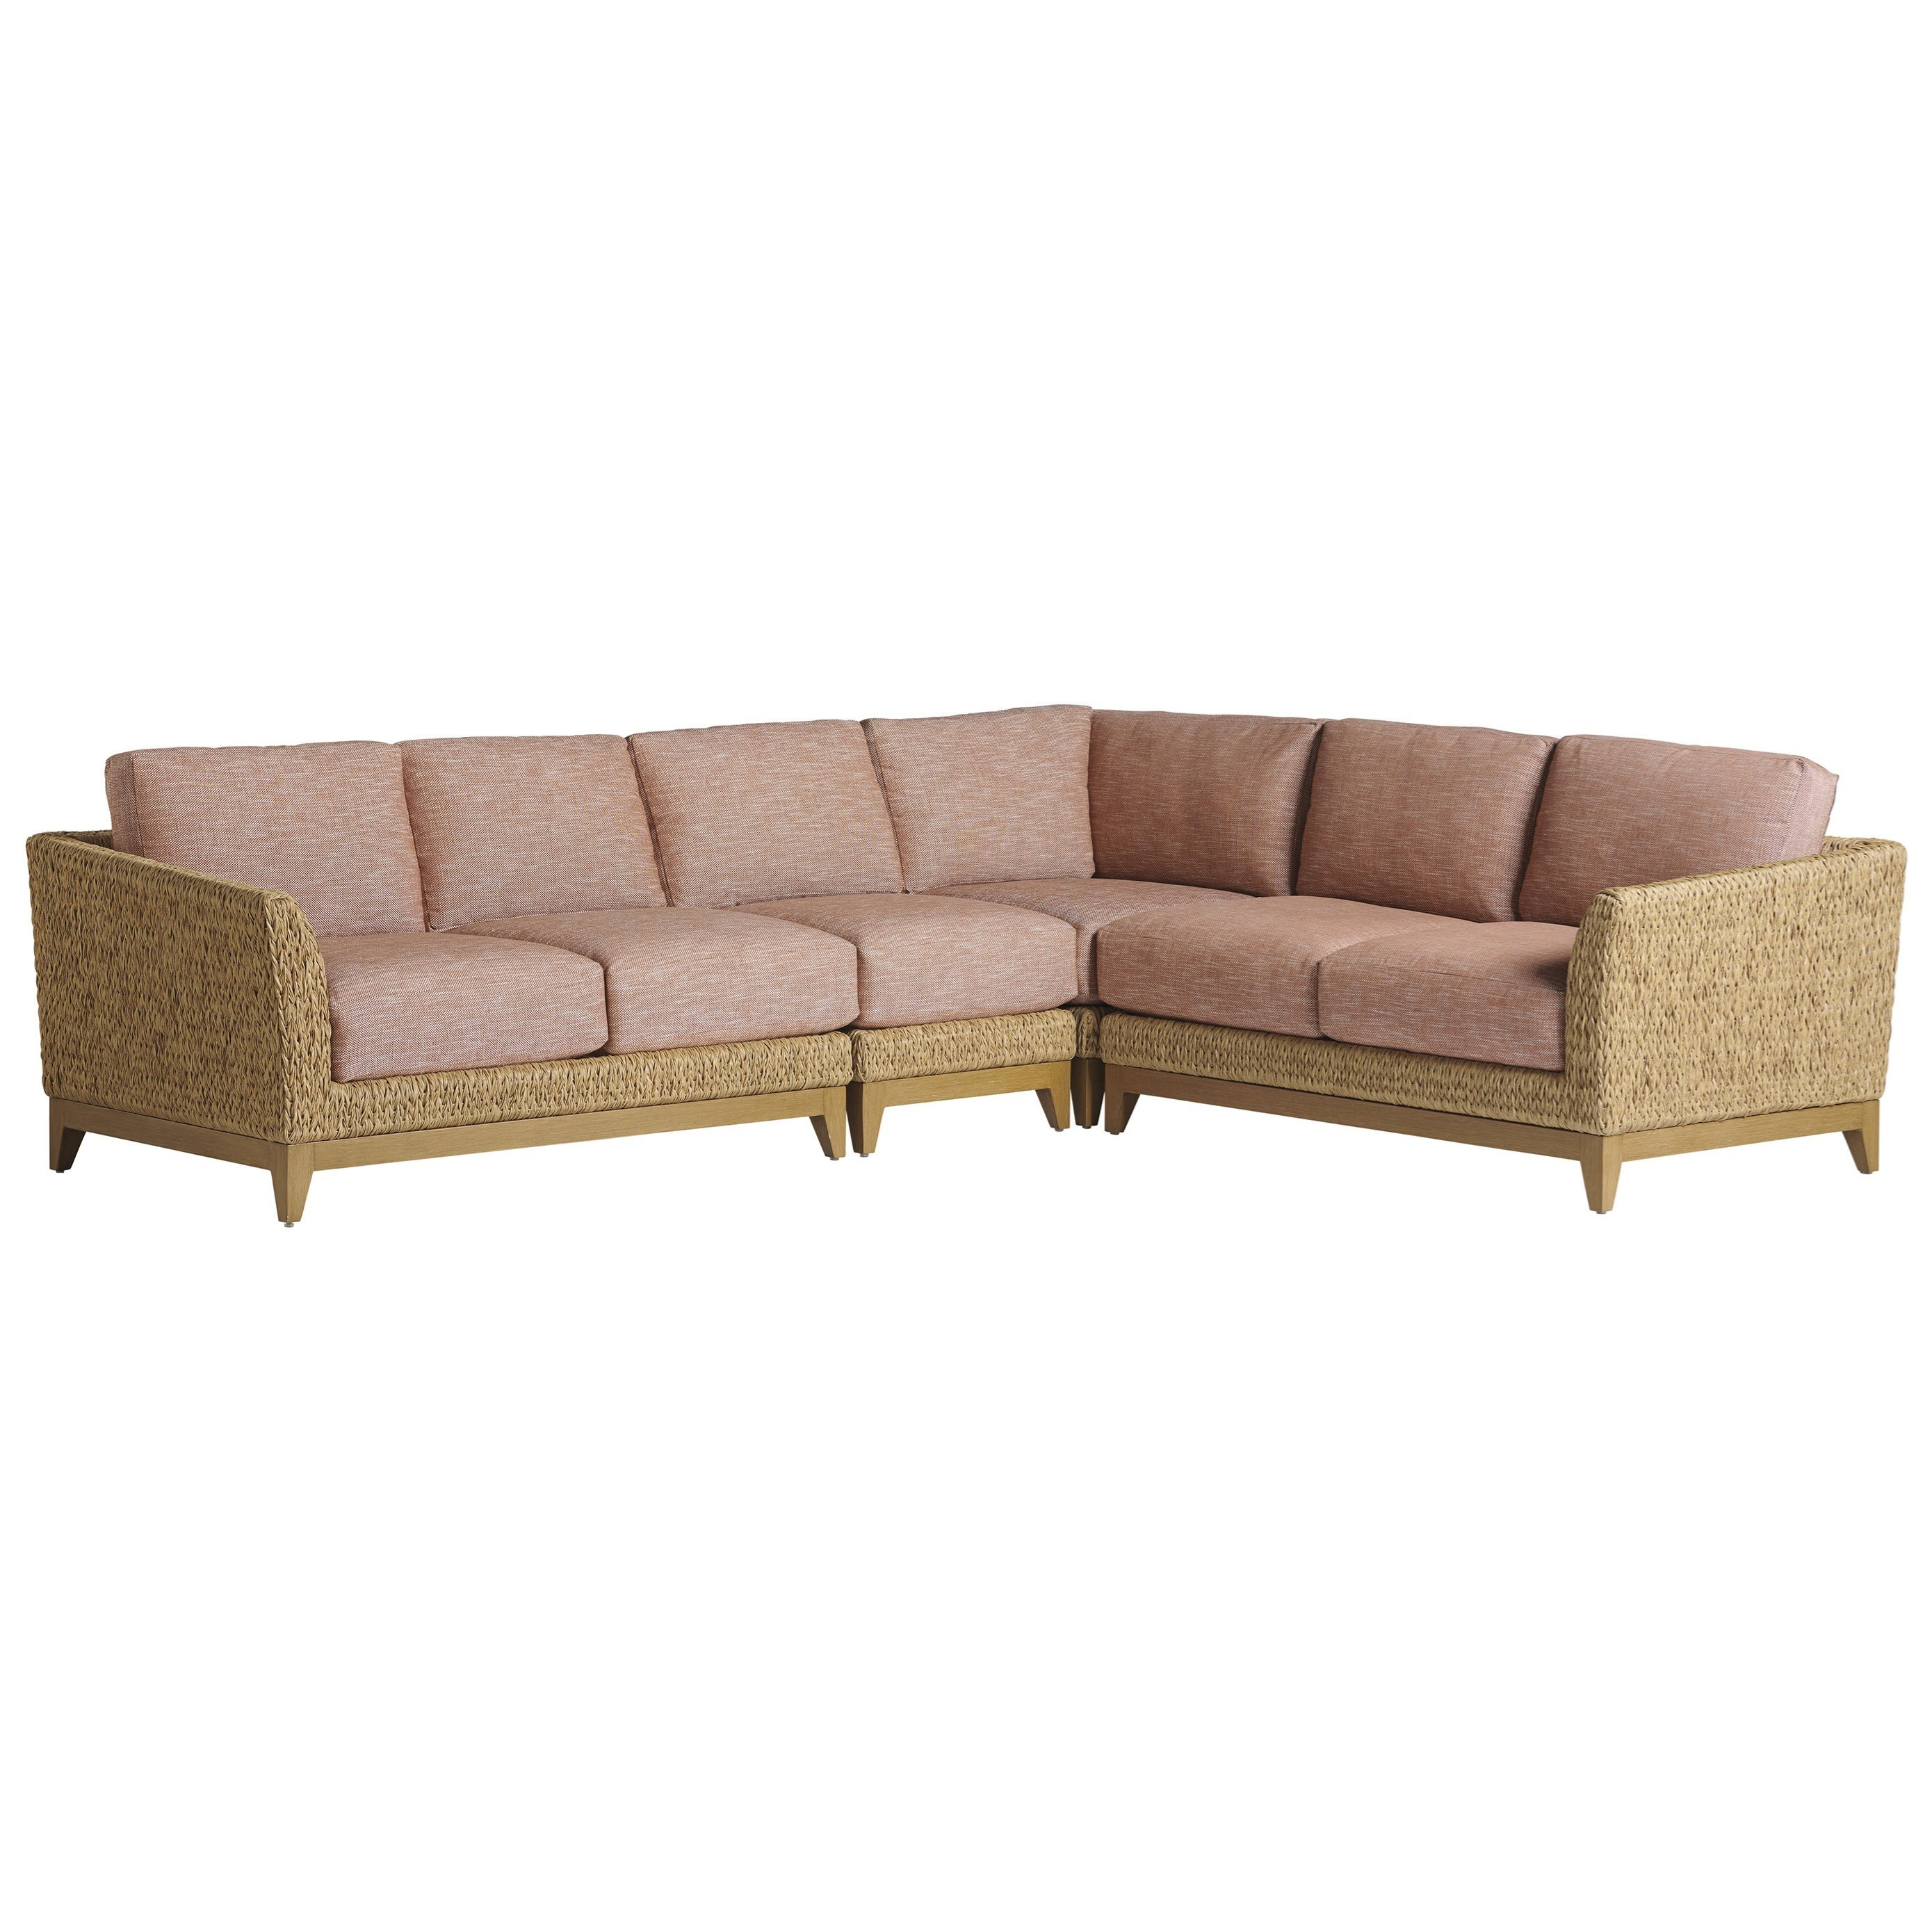 5-Seat Outdoor Sectional